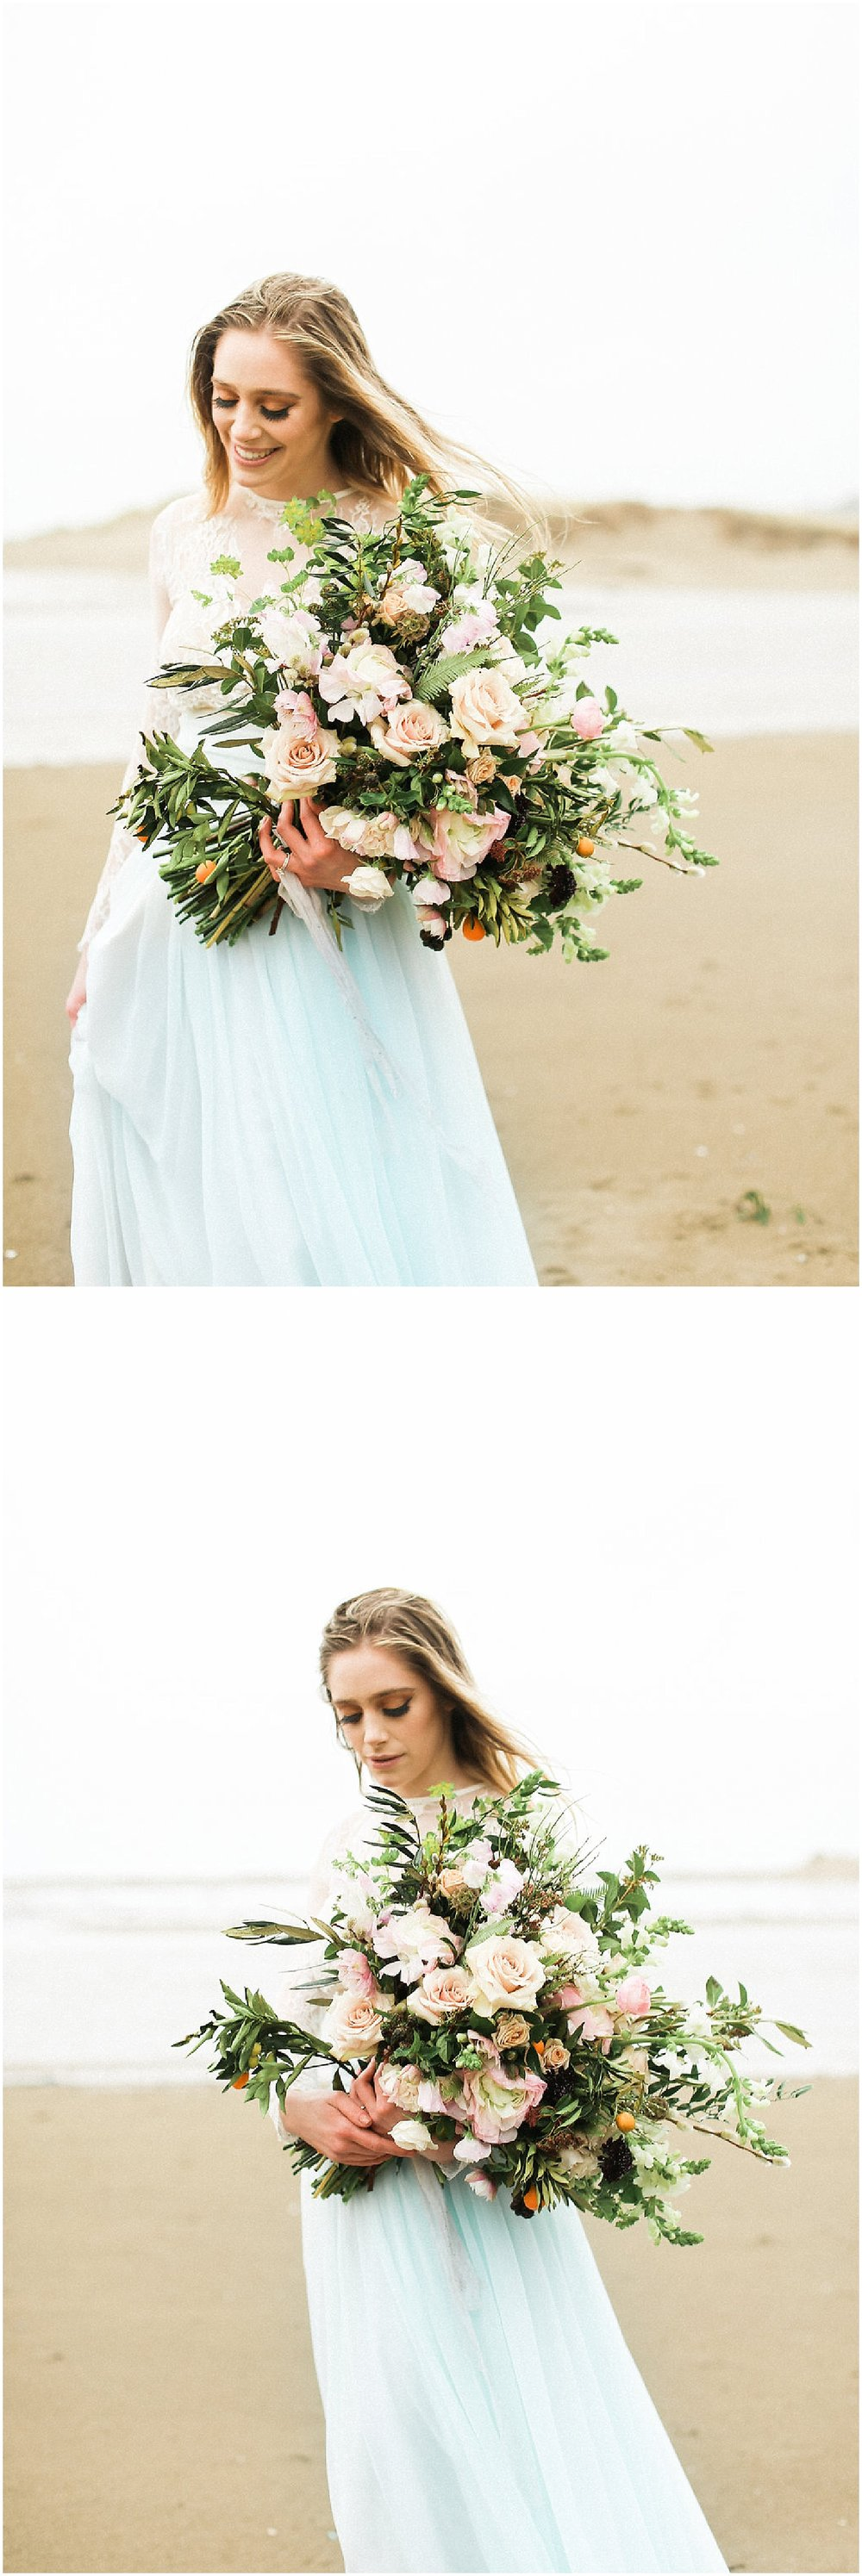 bride and floral bouquet